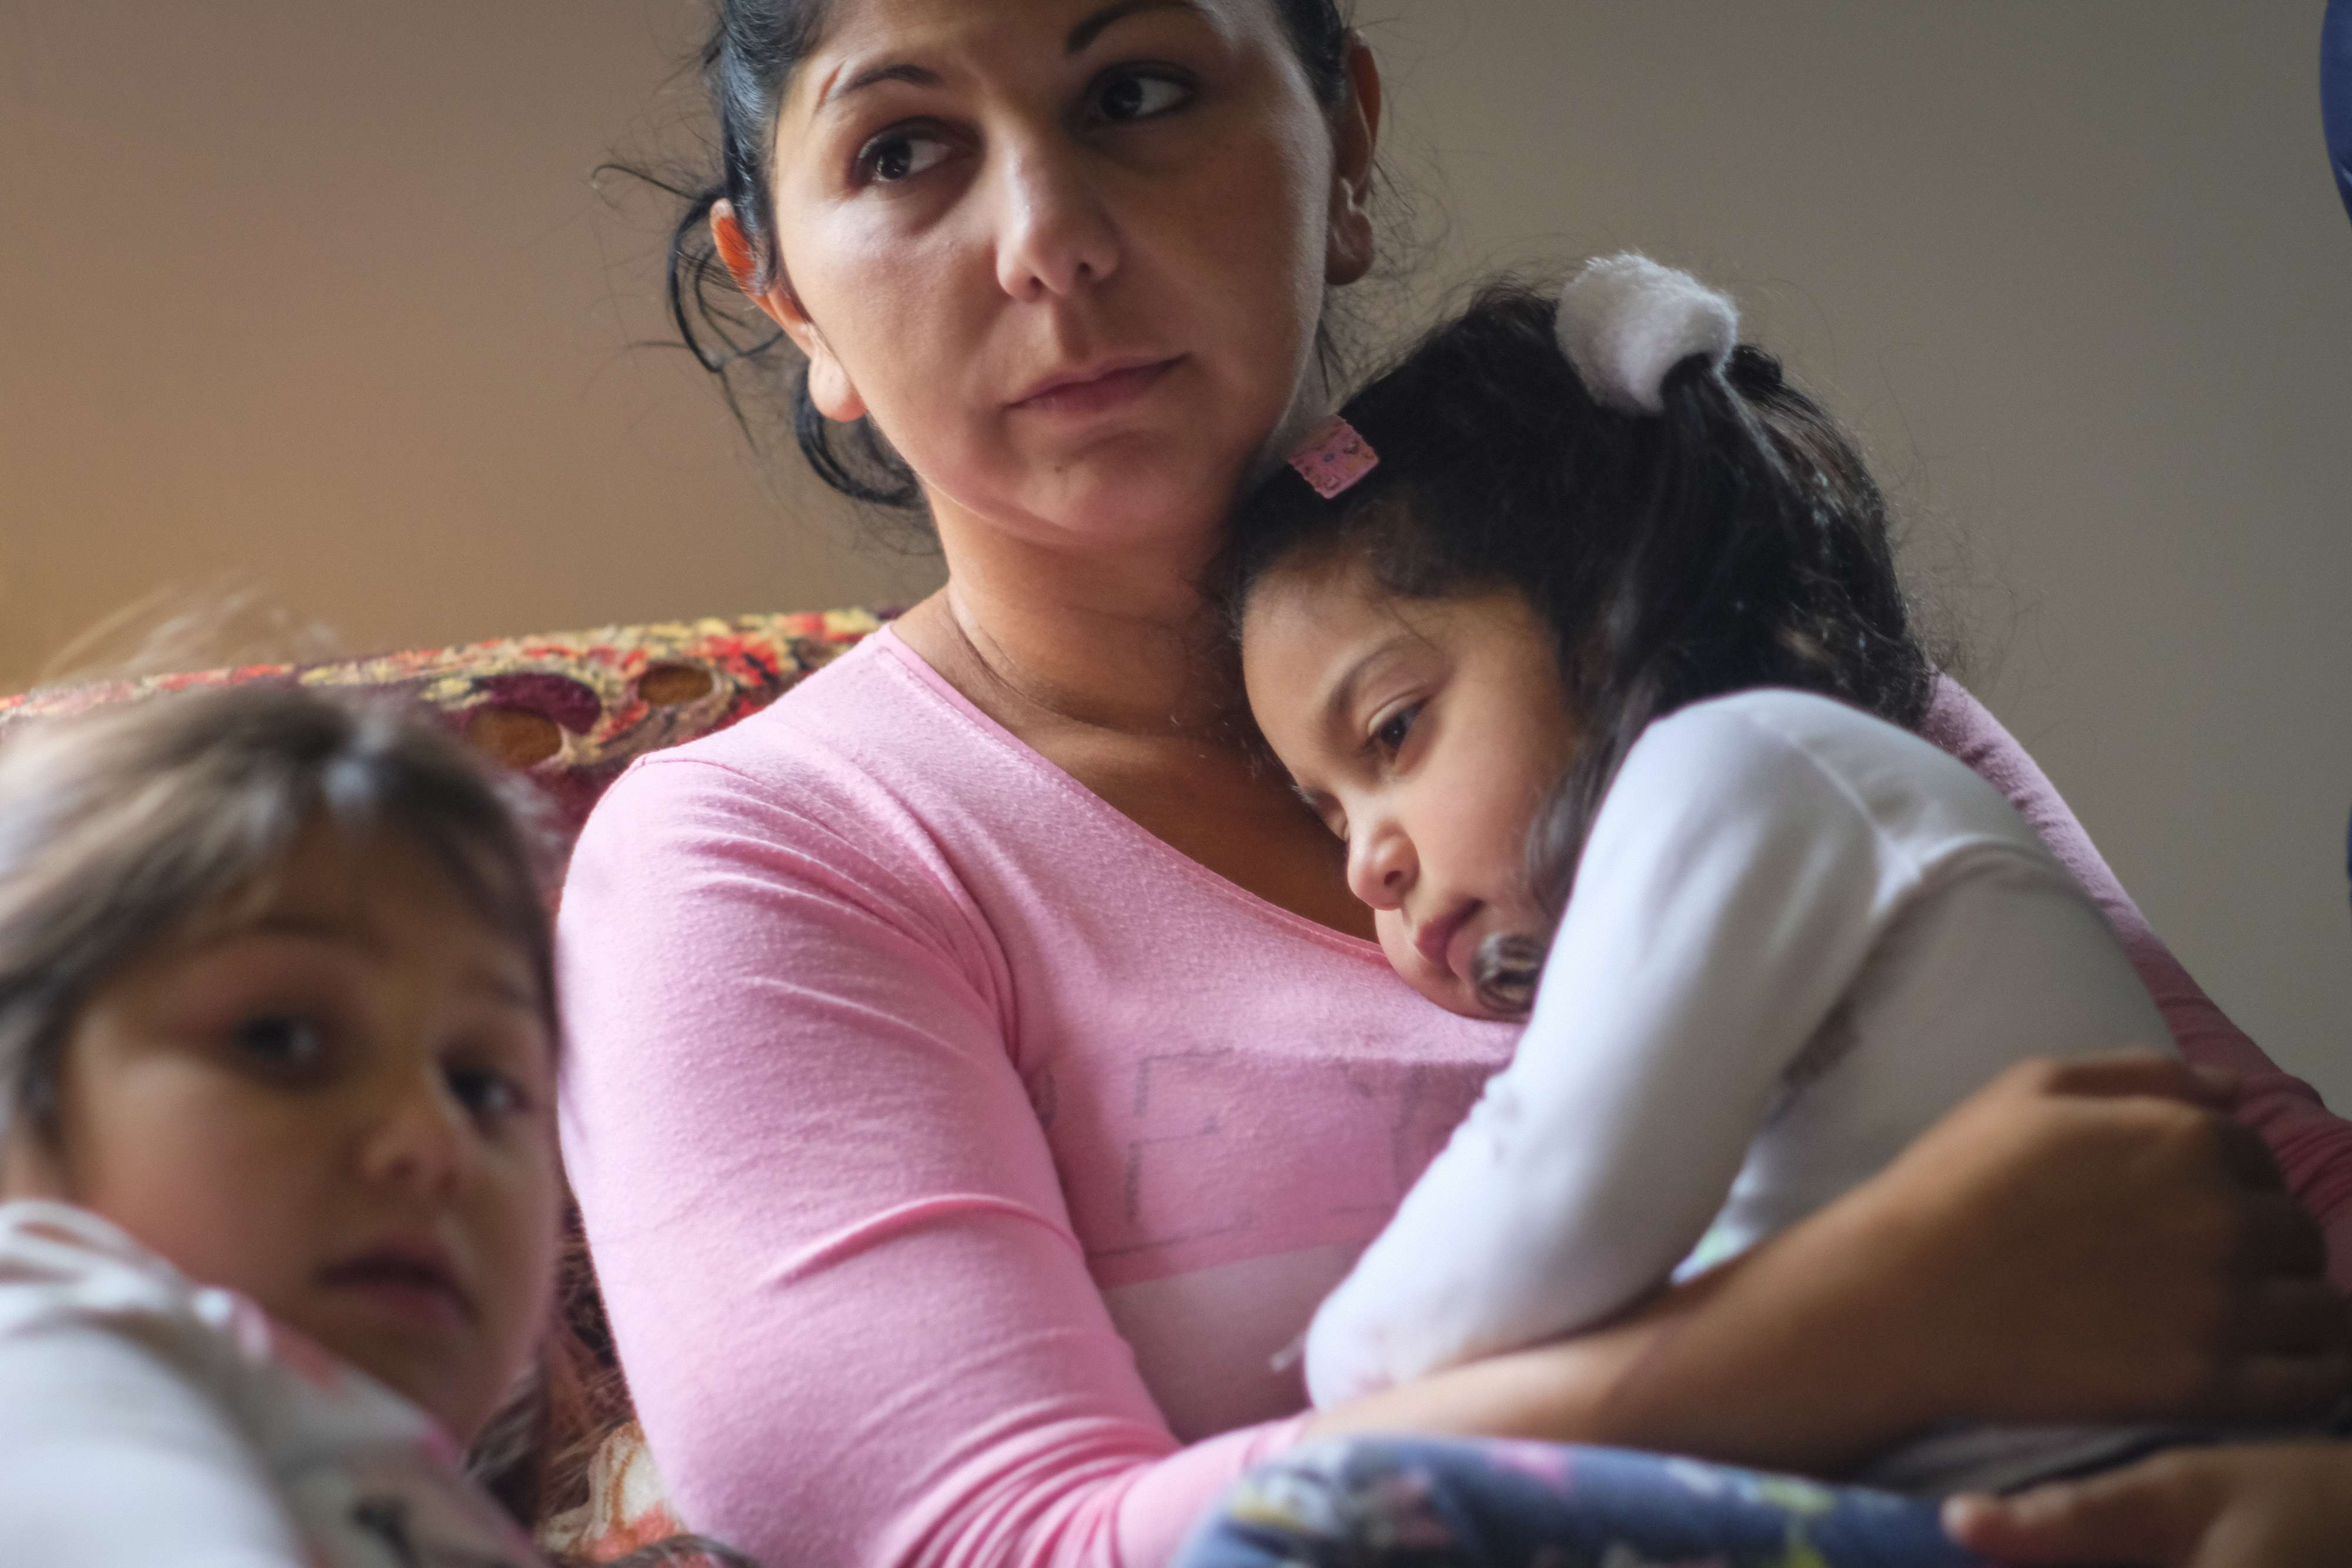 Standing Up for Roma Girls' Rights | Global Fund for Children